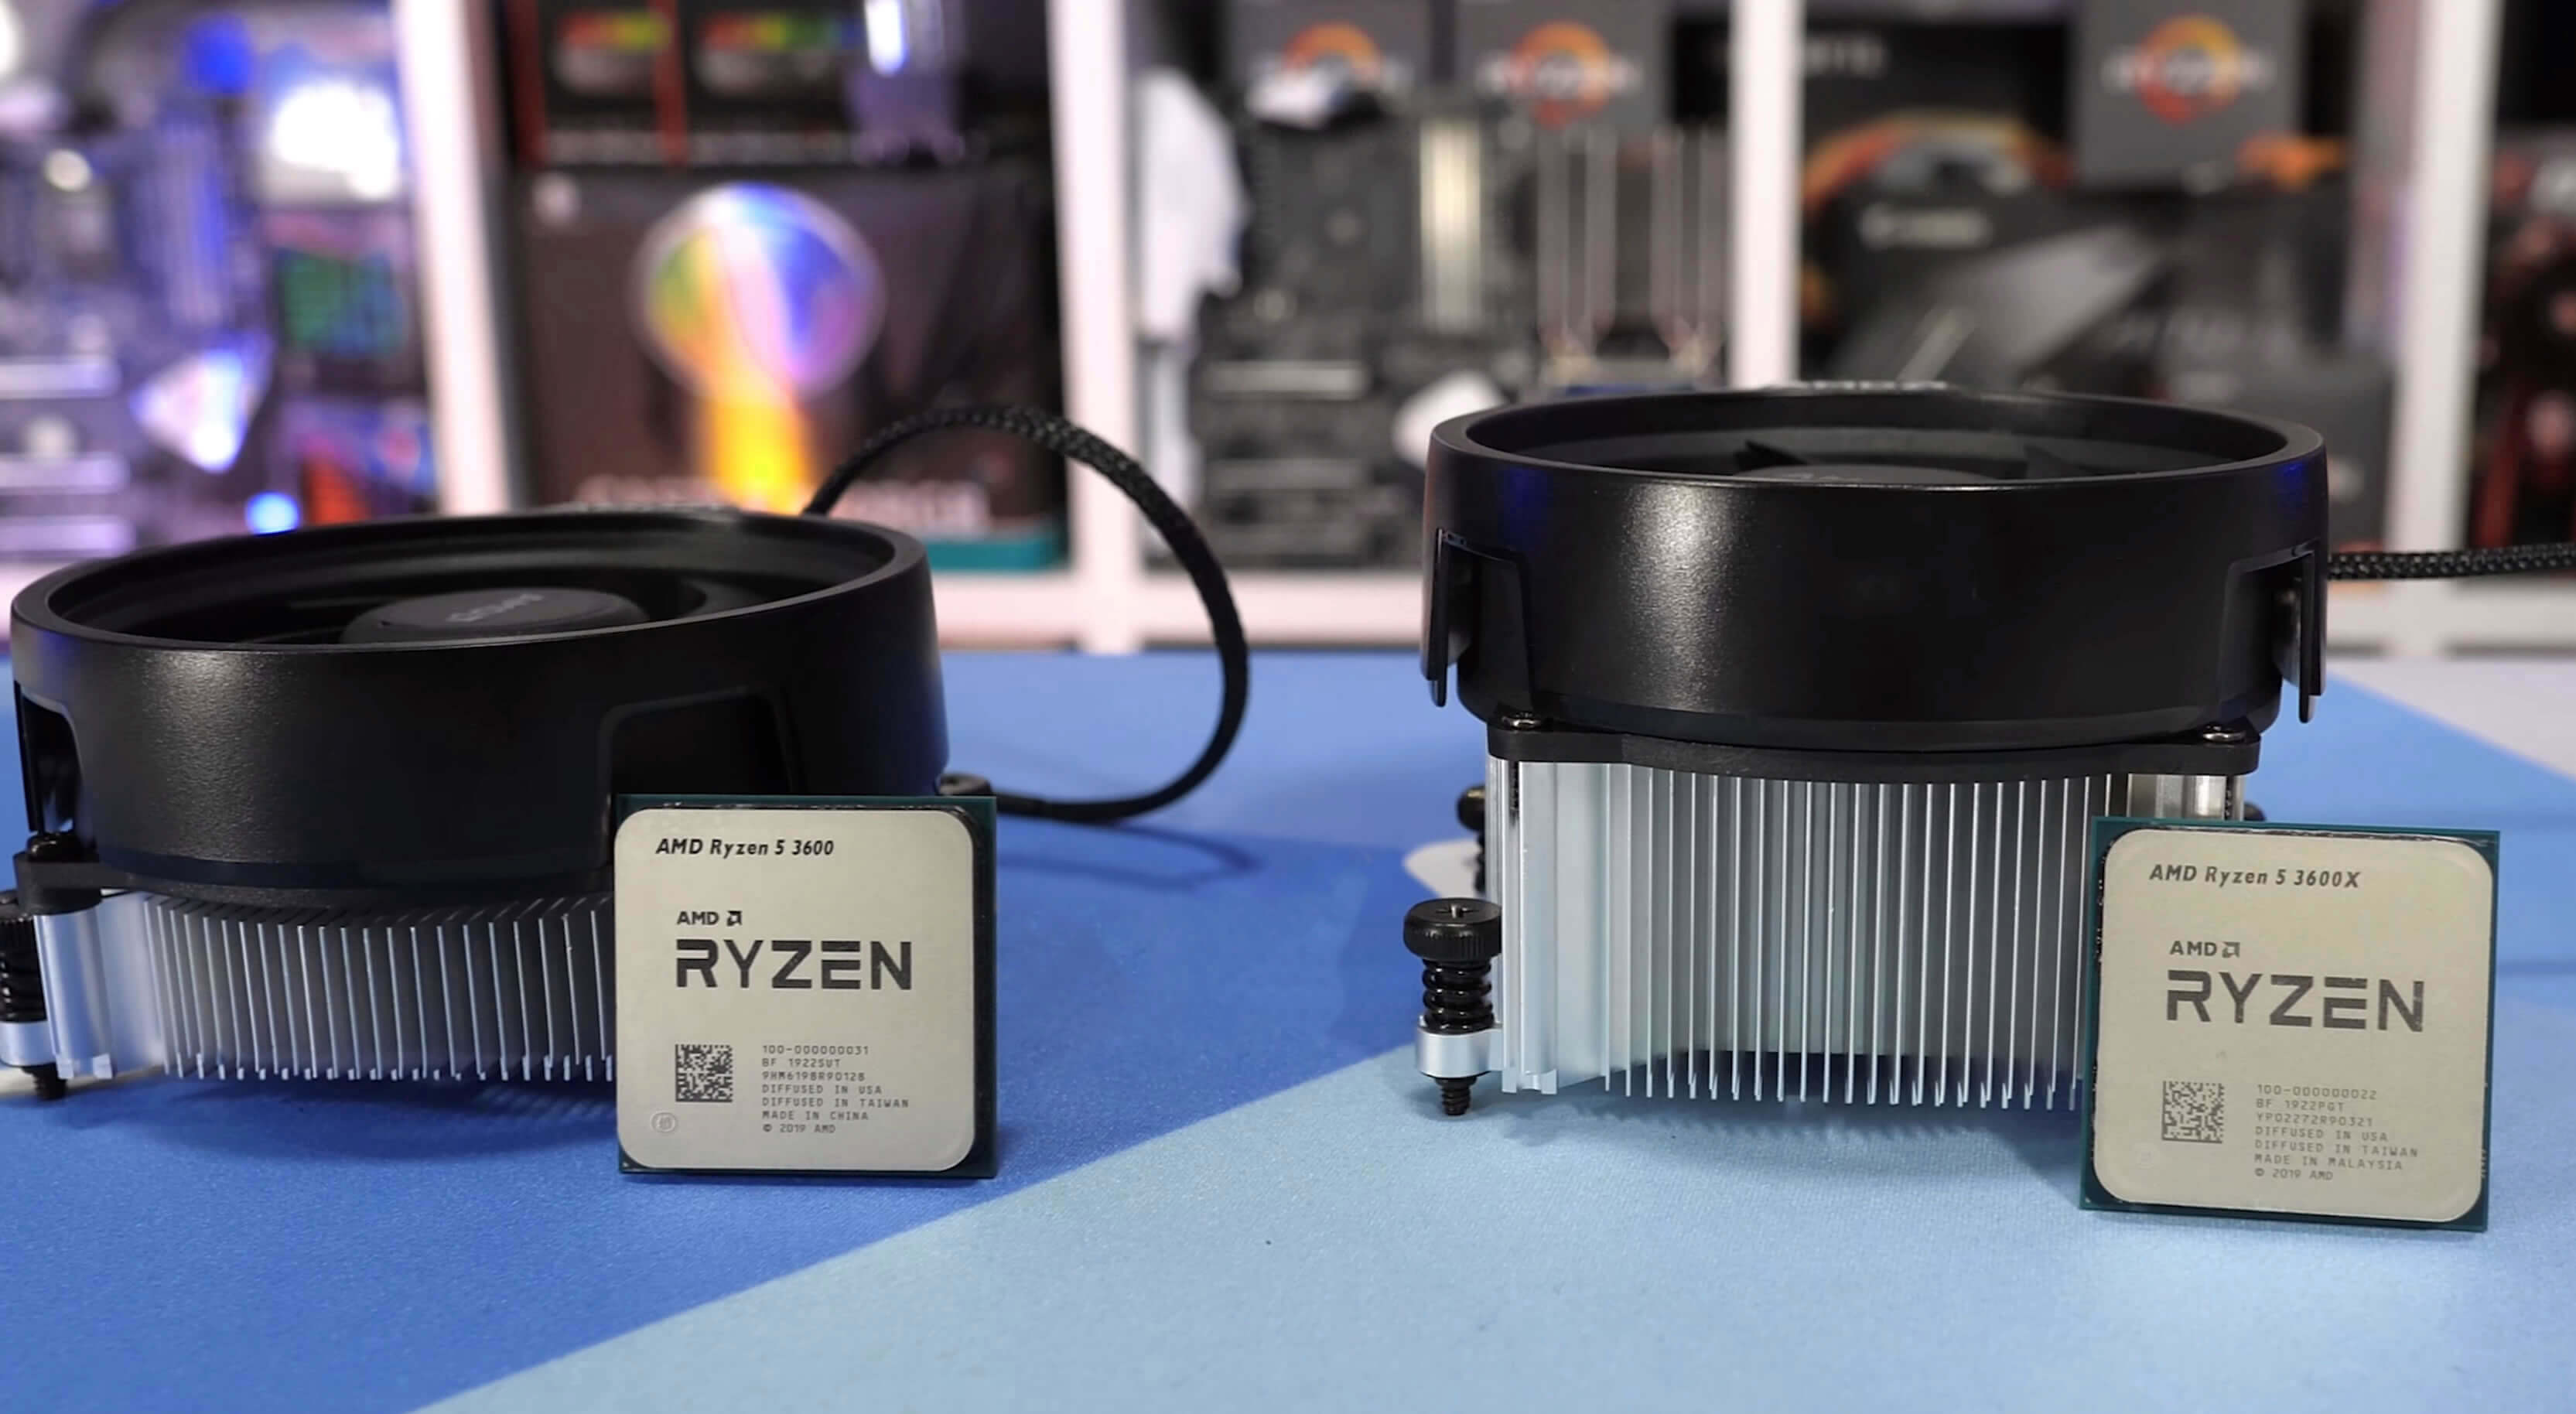 Amd Ryzen News and Articles - TechSpot